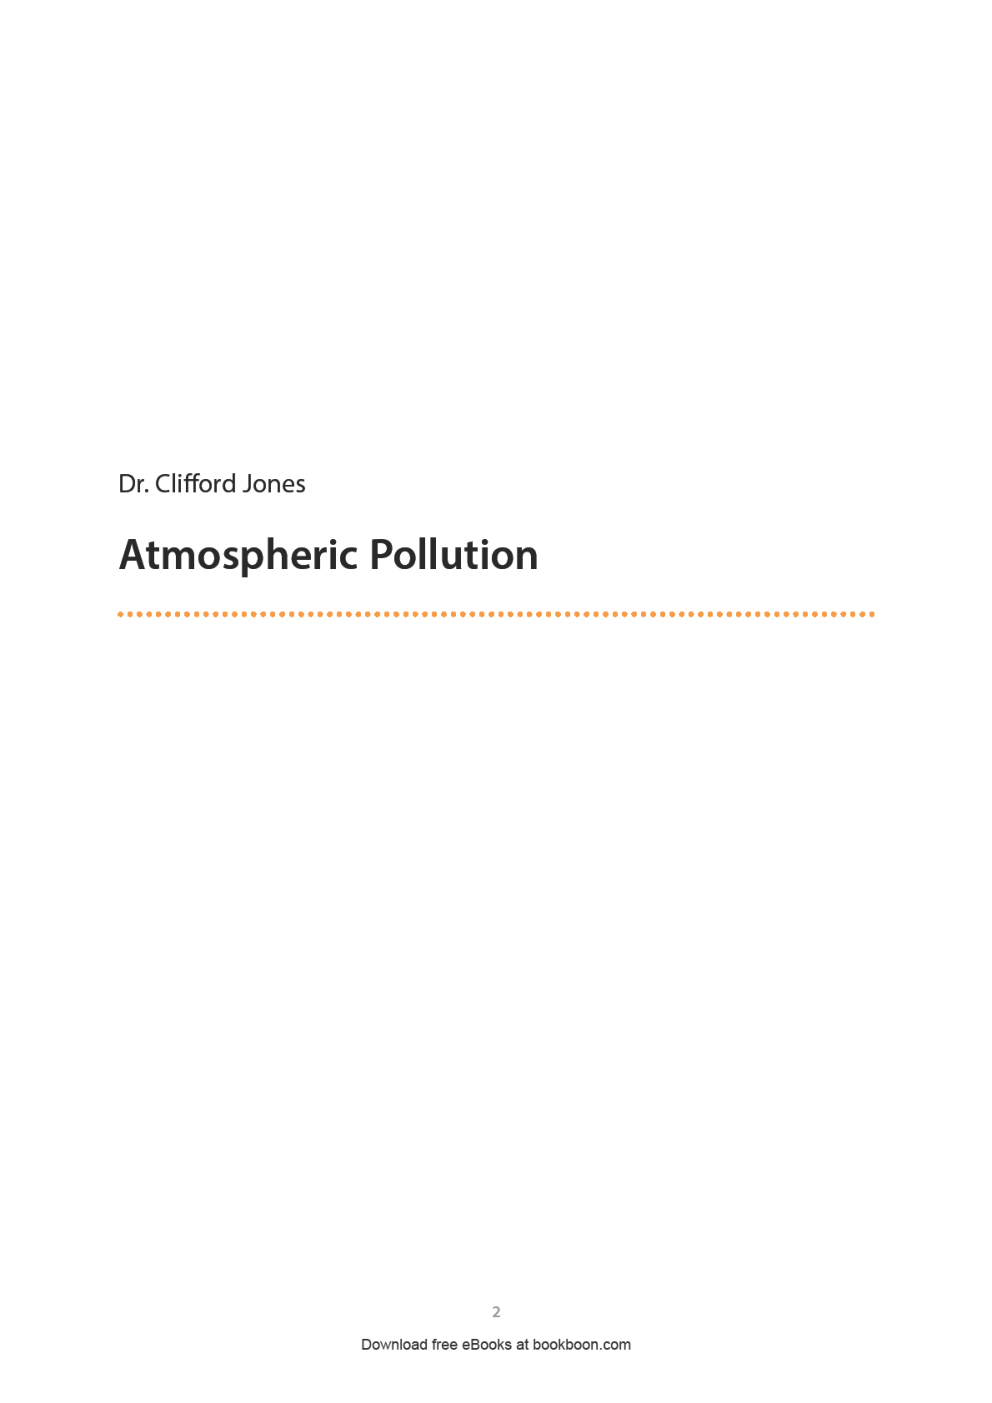 Atmospheric Pollution - Page 2